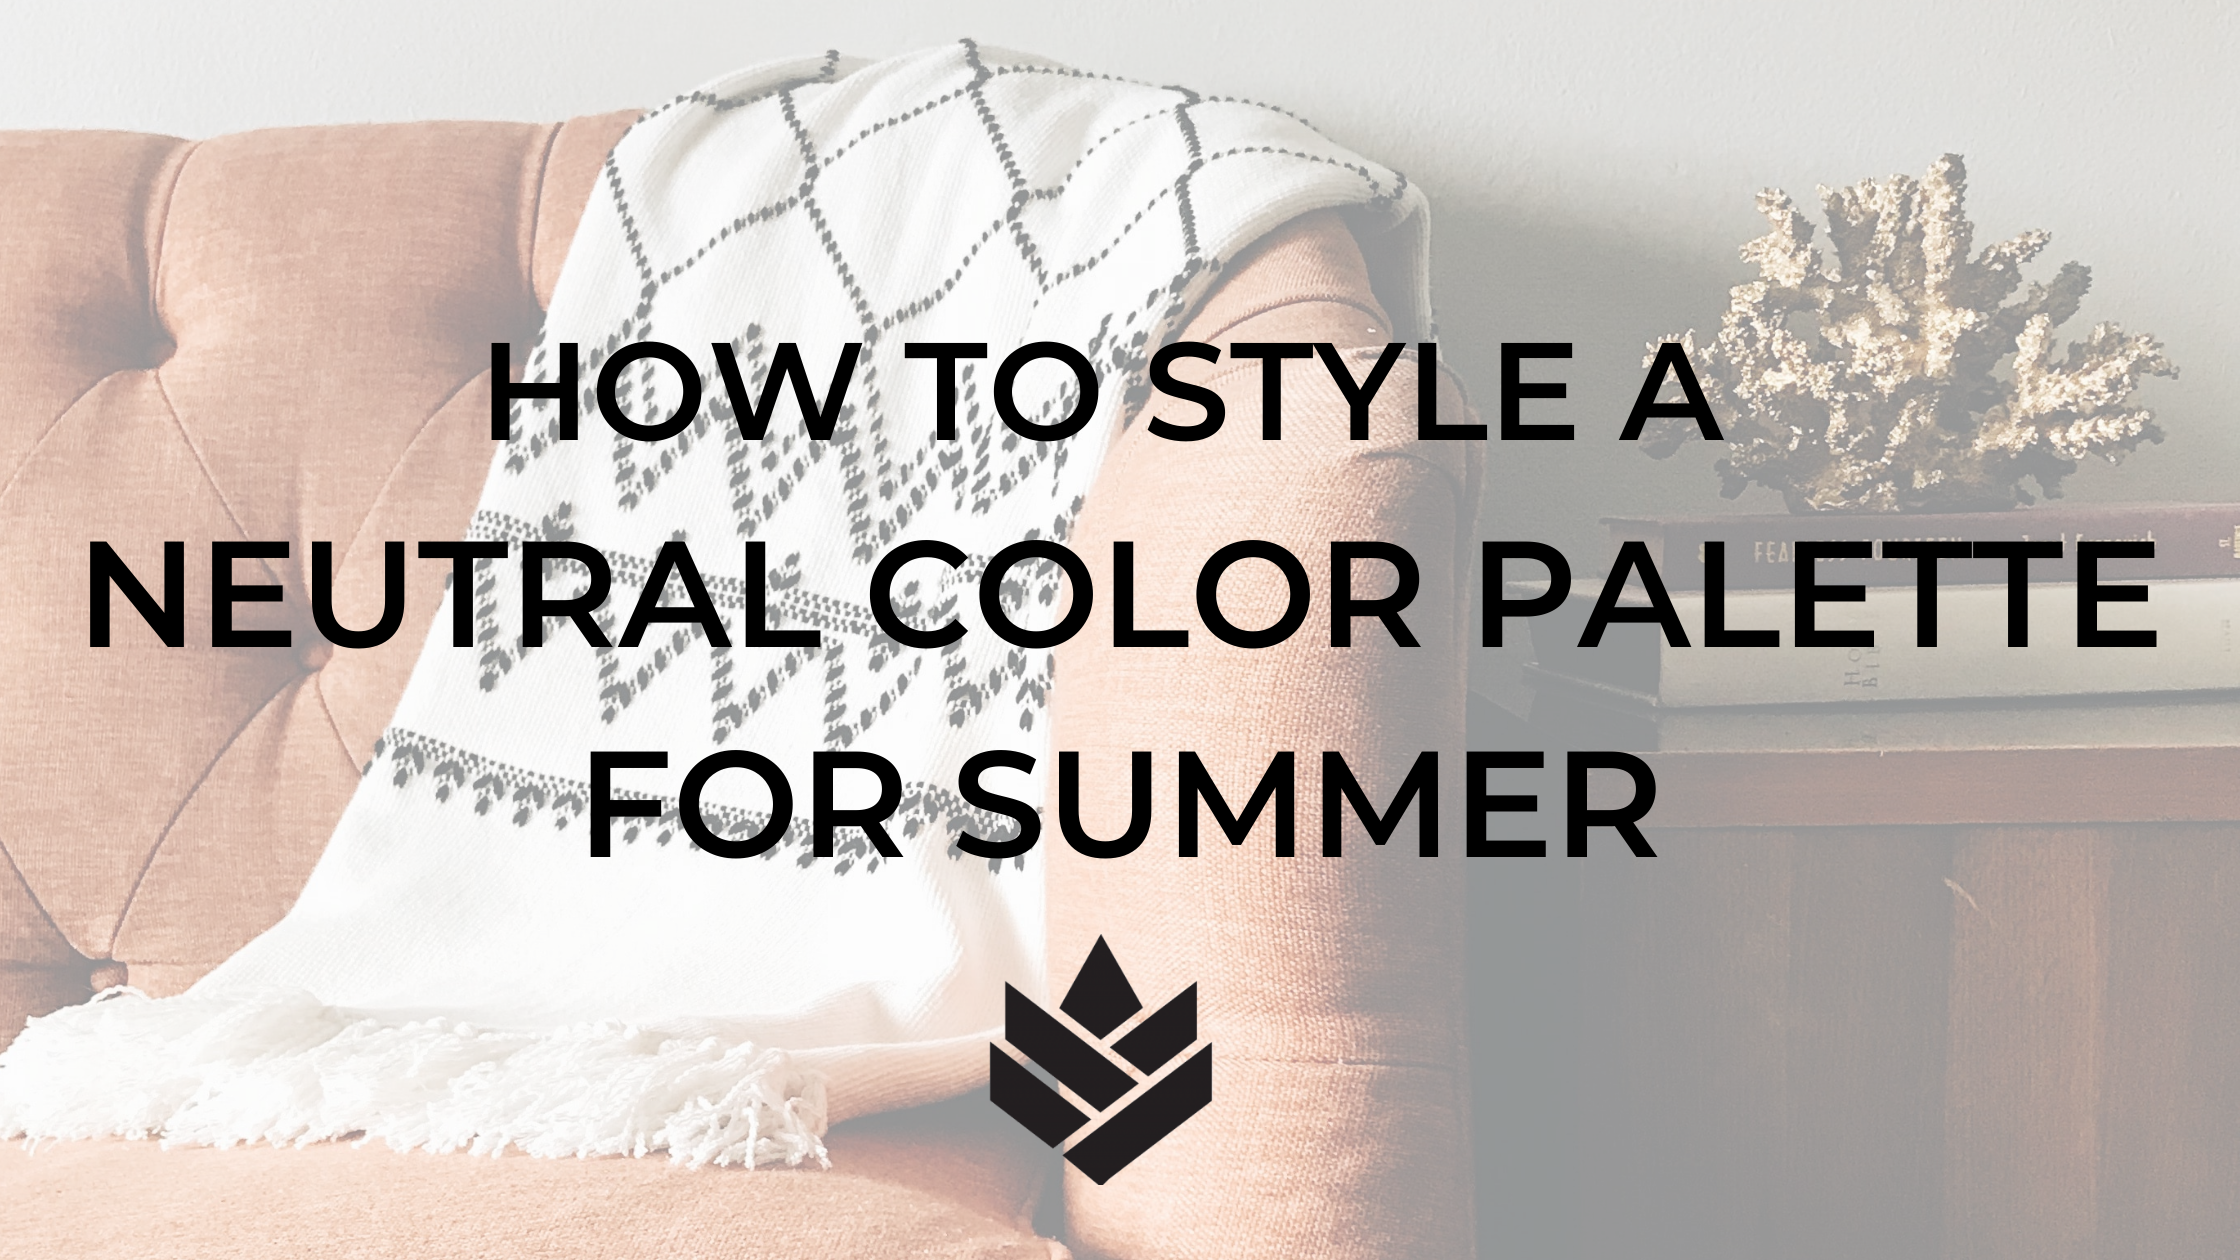 How to Style a Neutral Color Palette for Summer